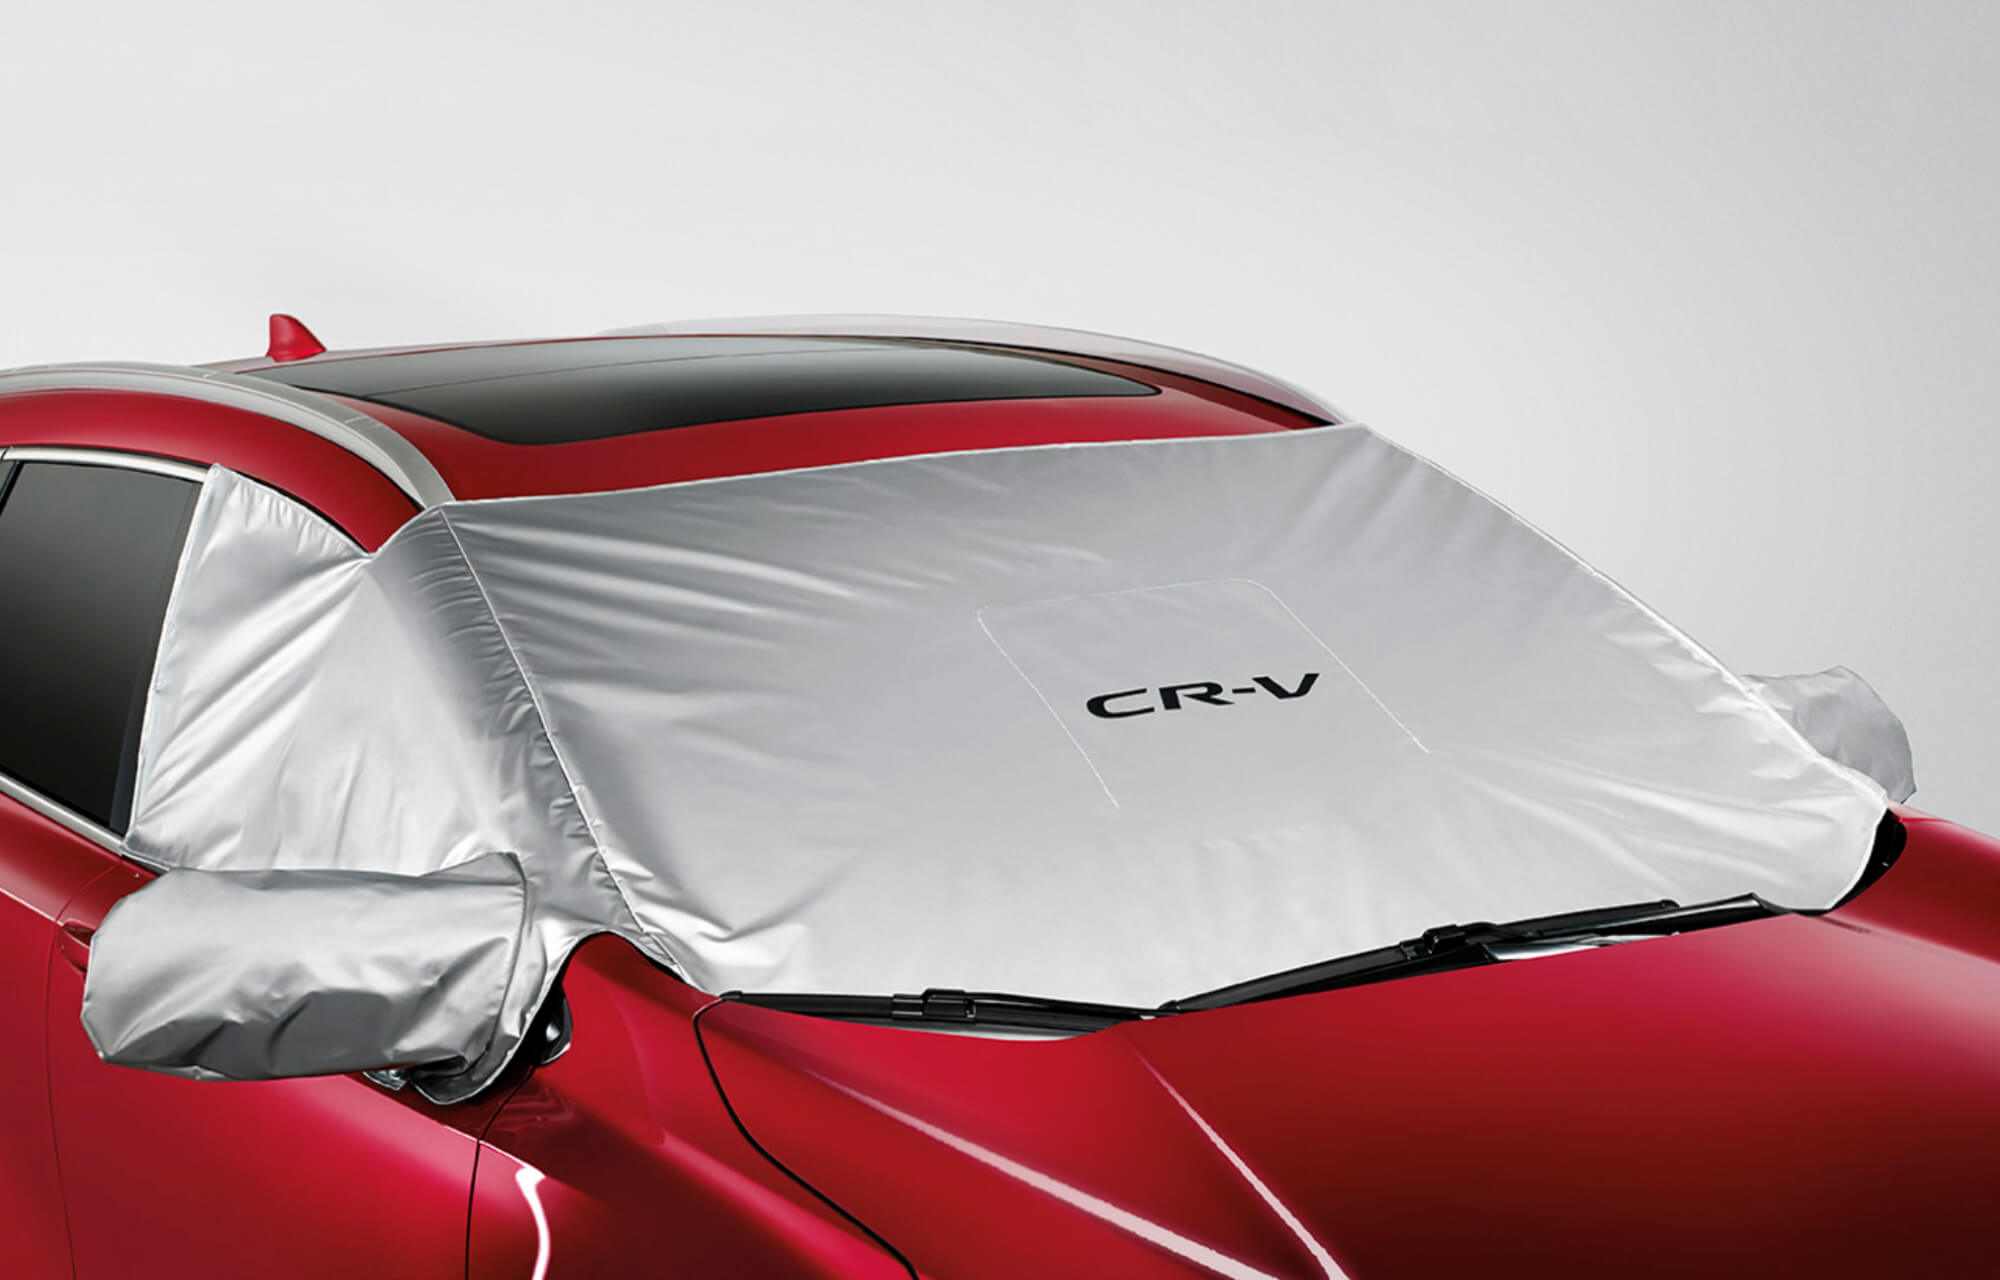 CR-V Windshield Cover